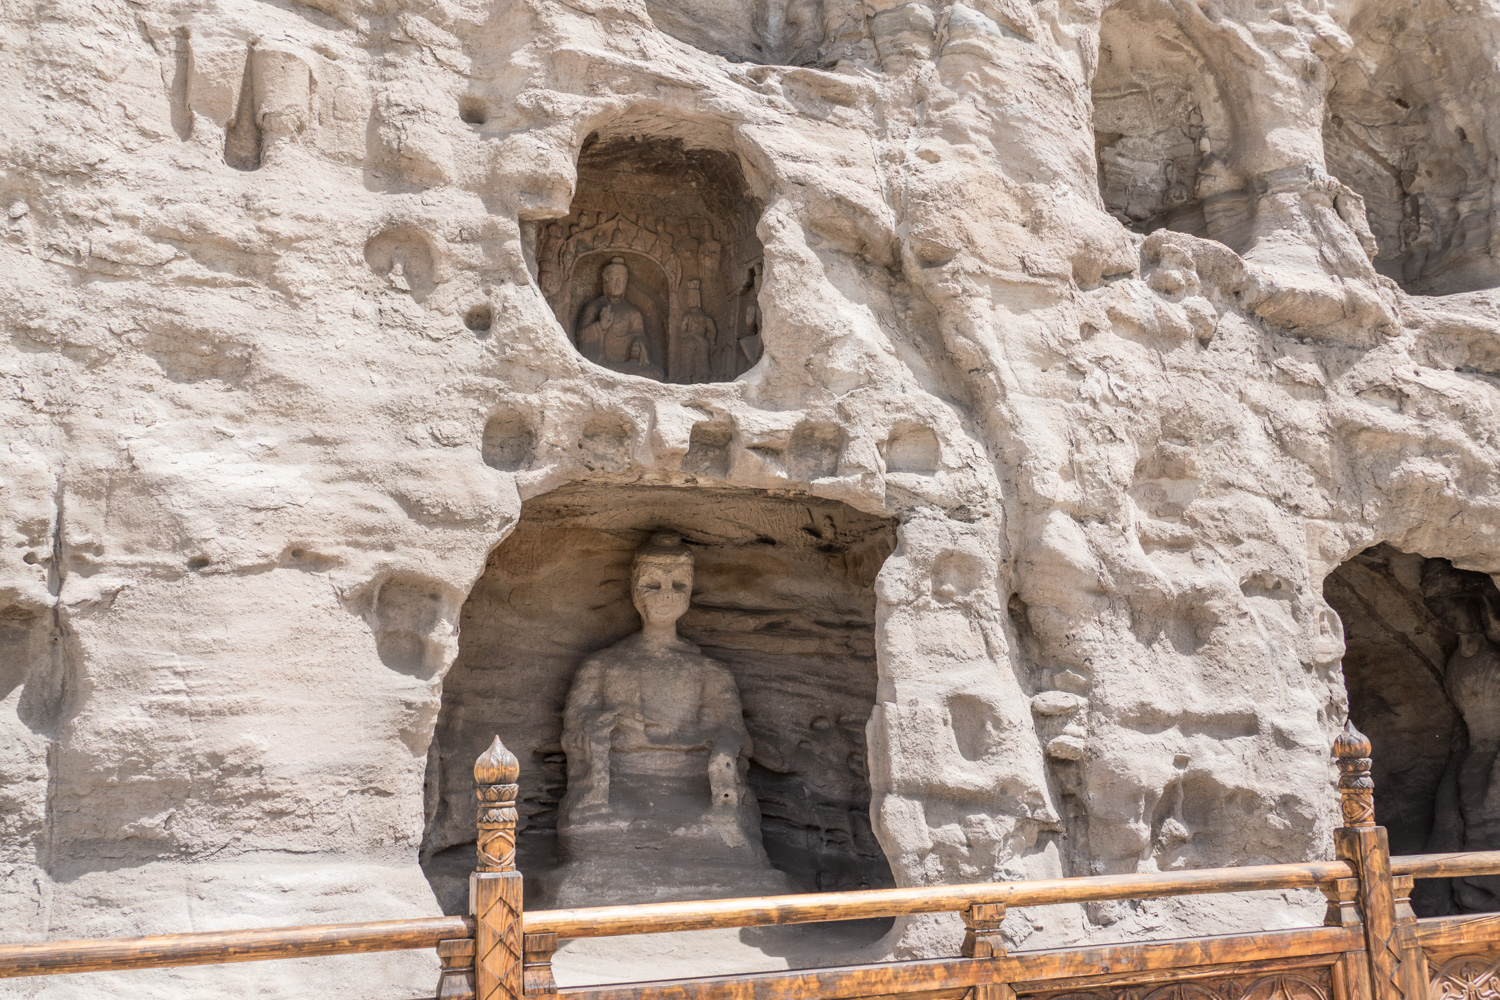 Many statues are in individual caves